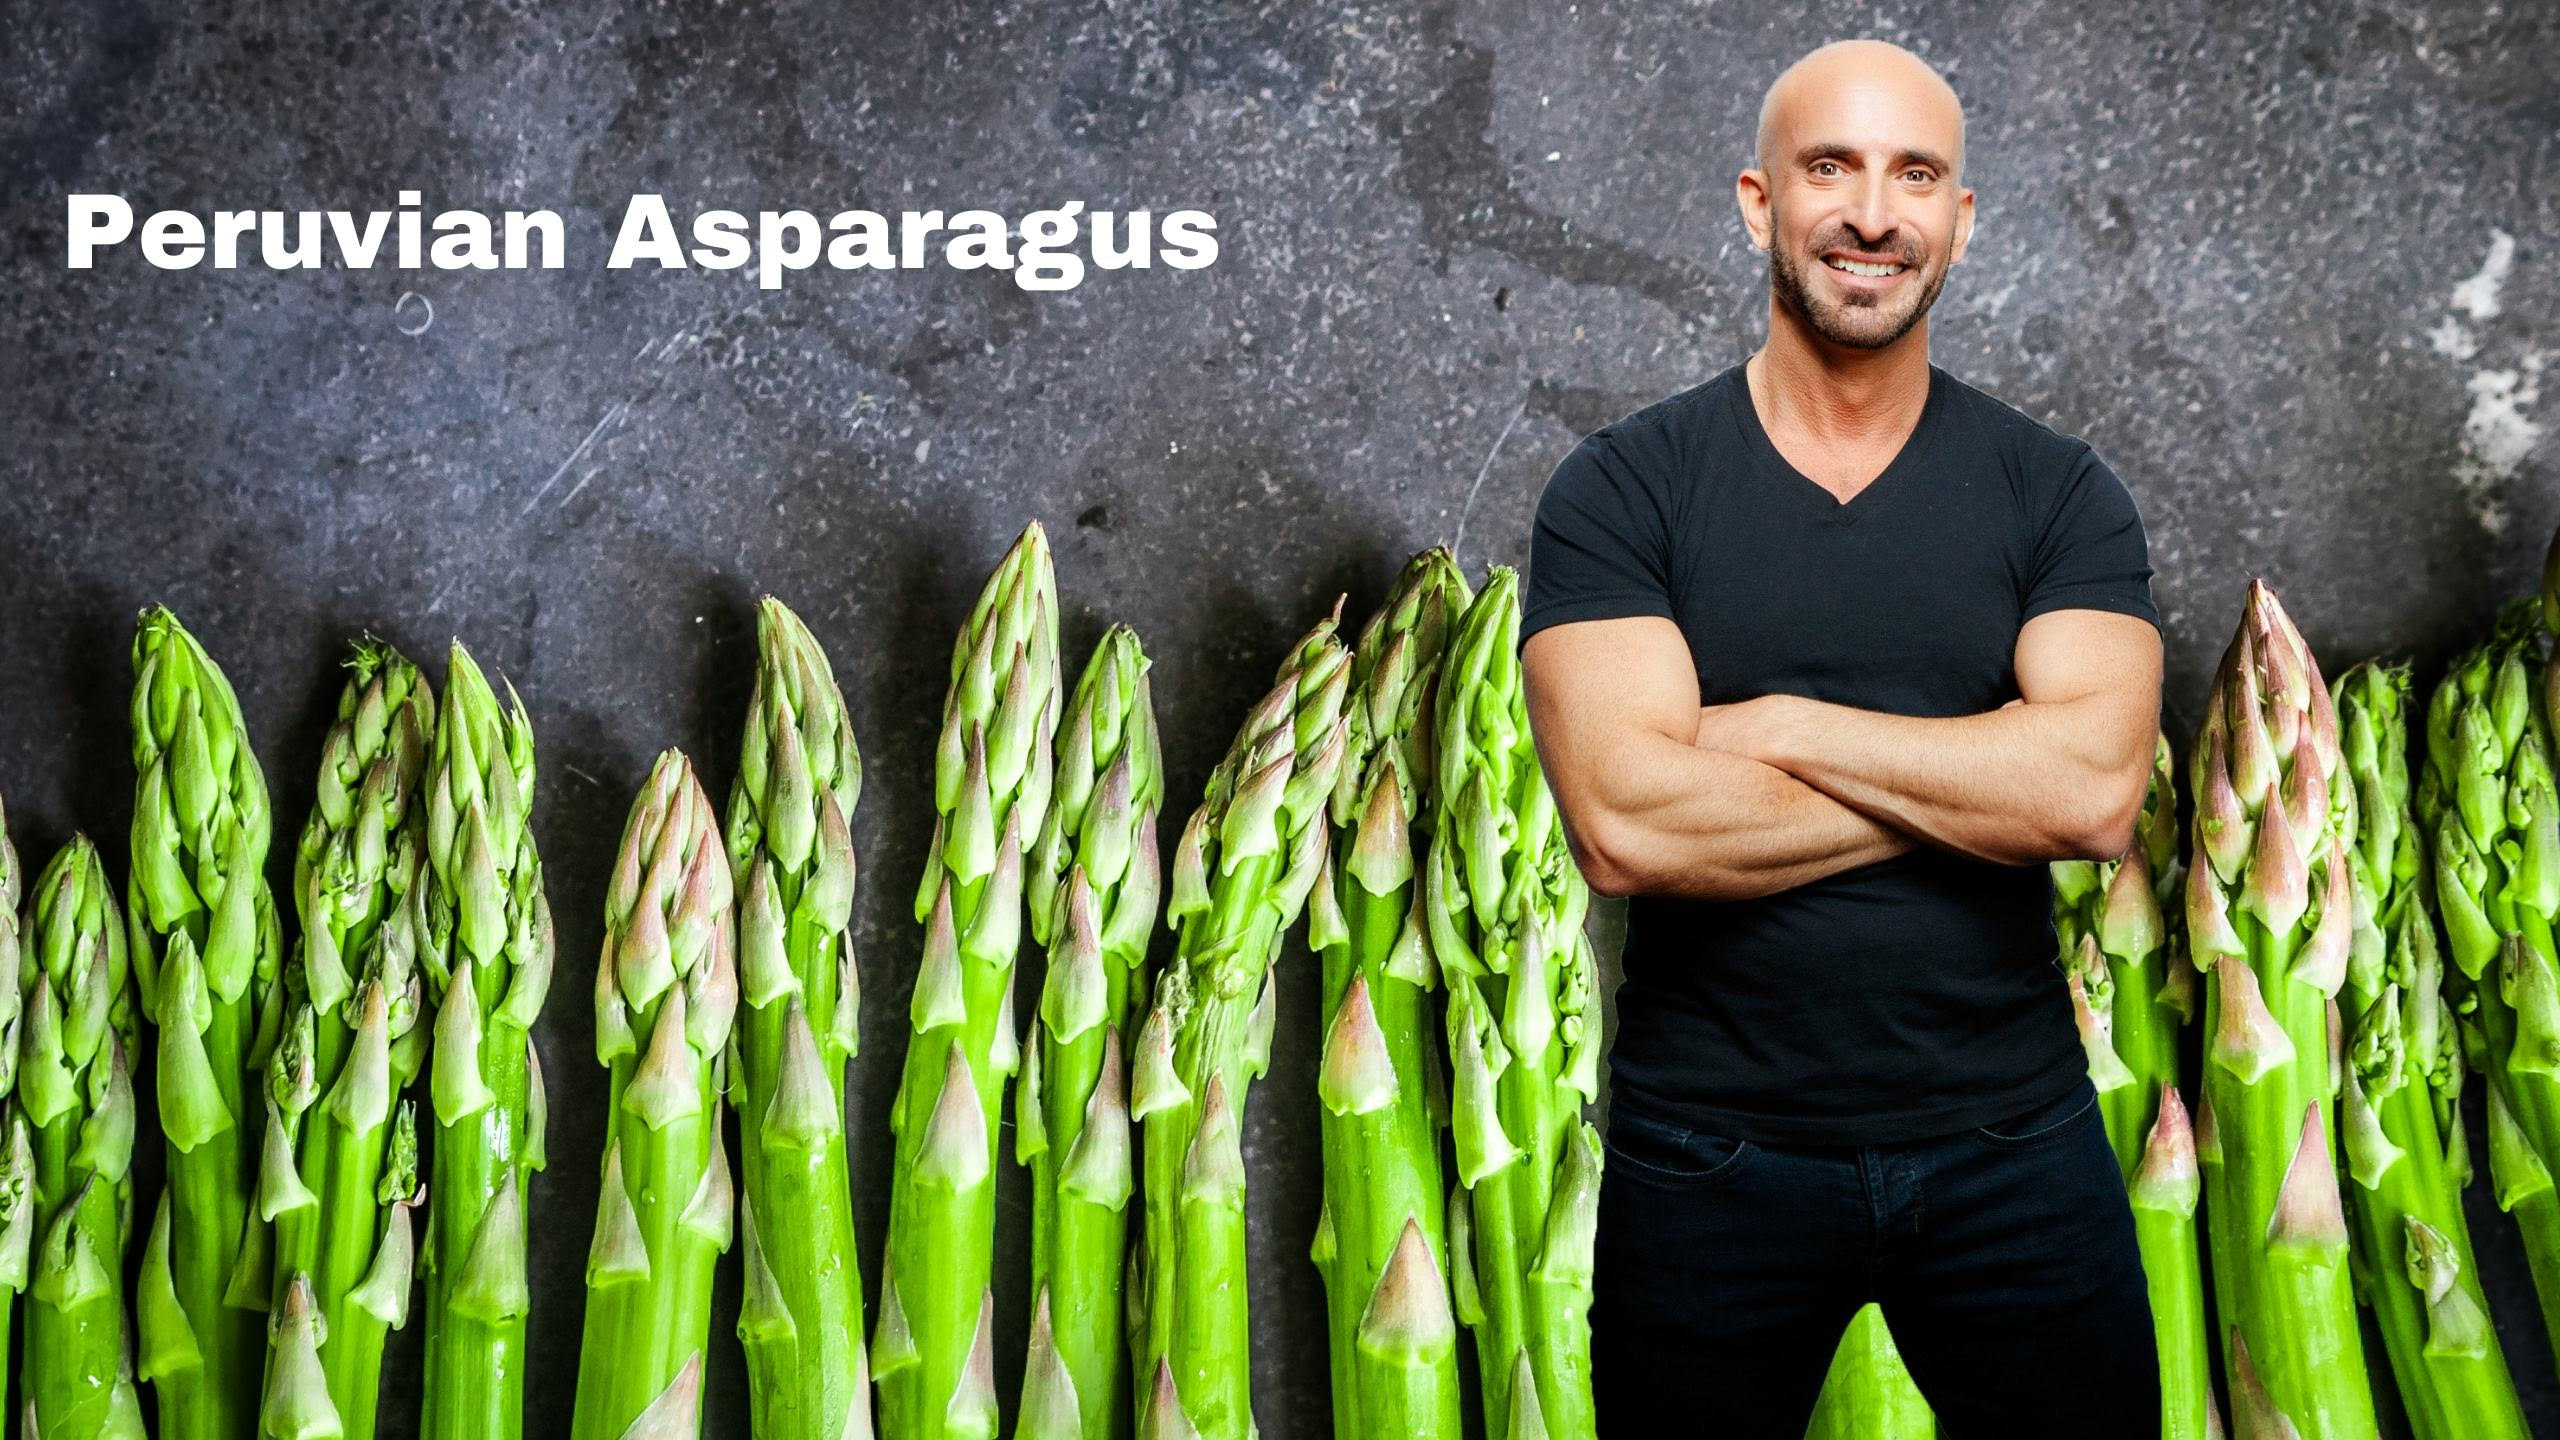 How To Cook Asparagus In 3 Easy and Gourmet Ways